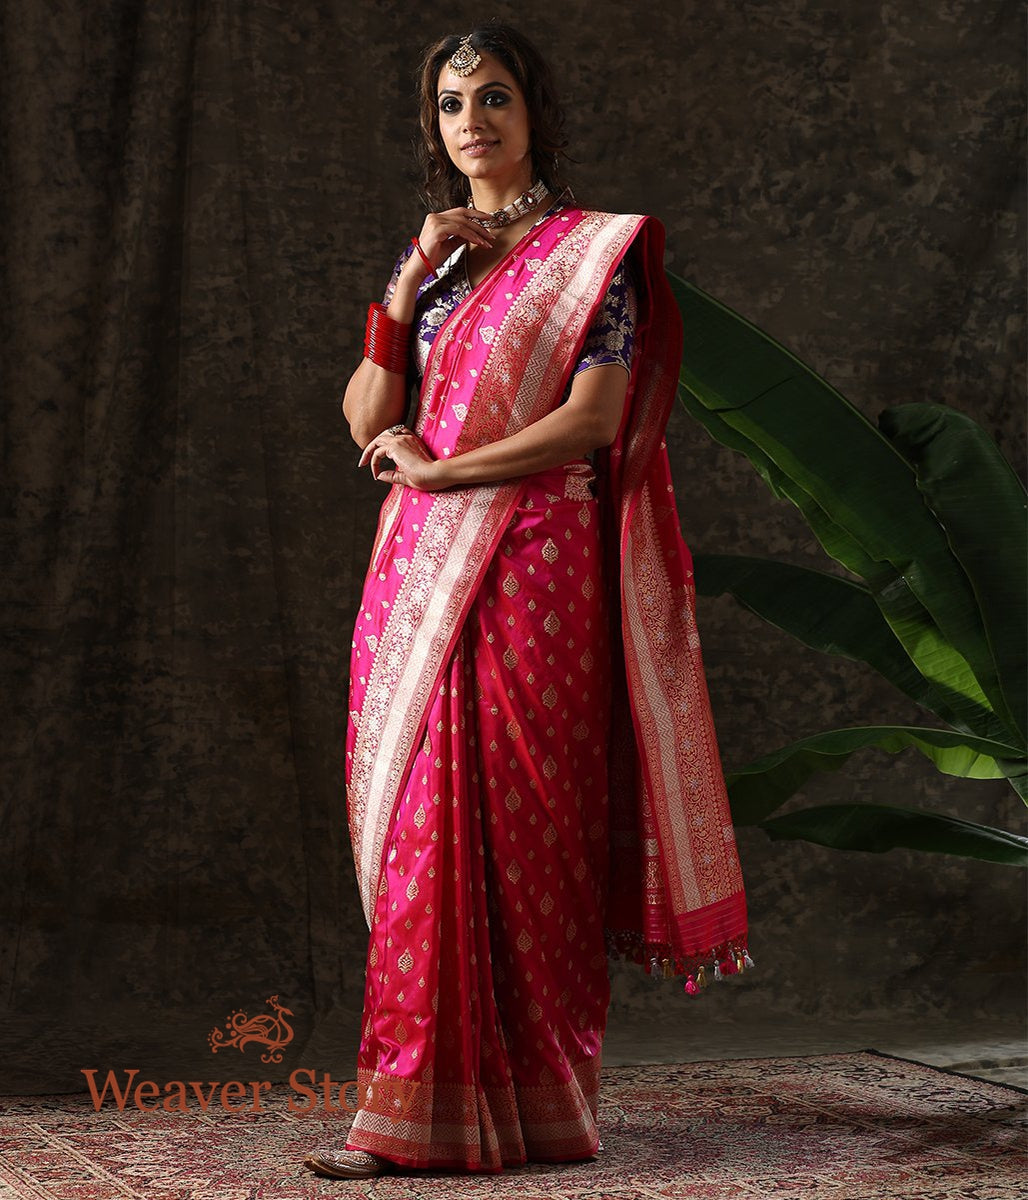 Handwoven Pink Sona Rupa Kadhwa Boota Saree with Silver Border